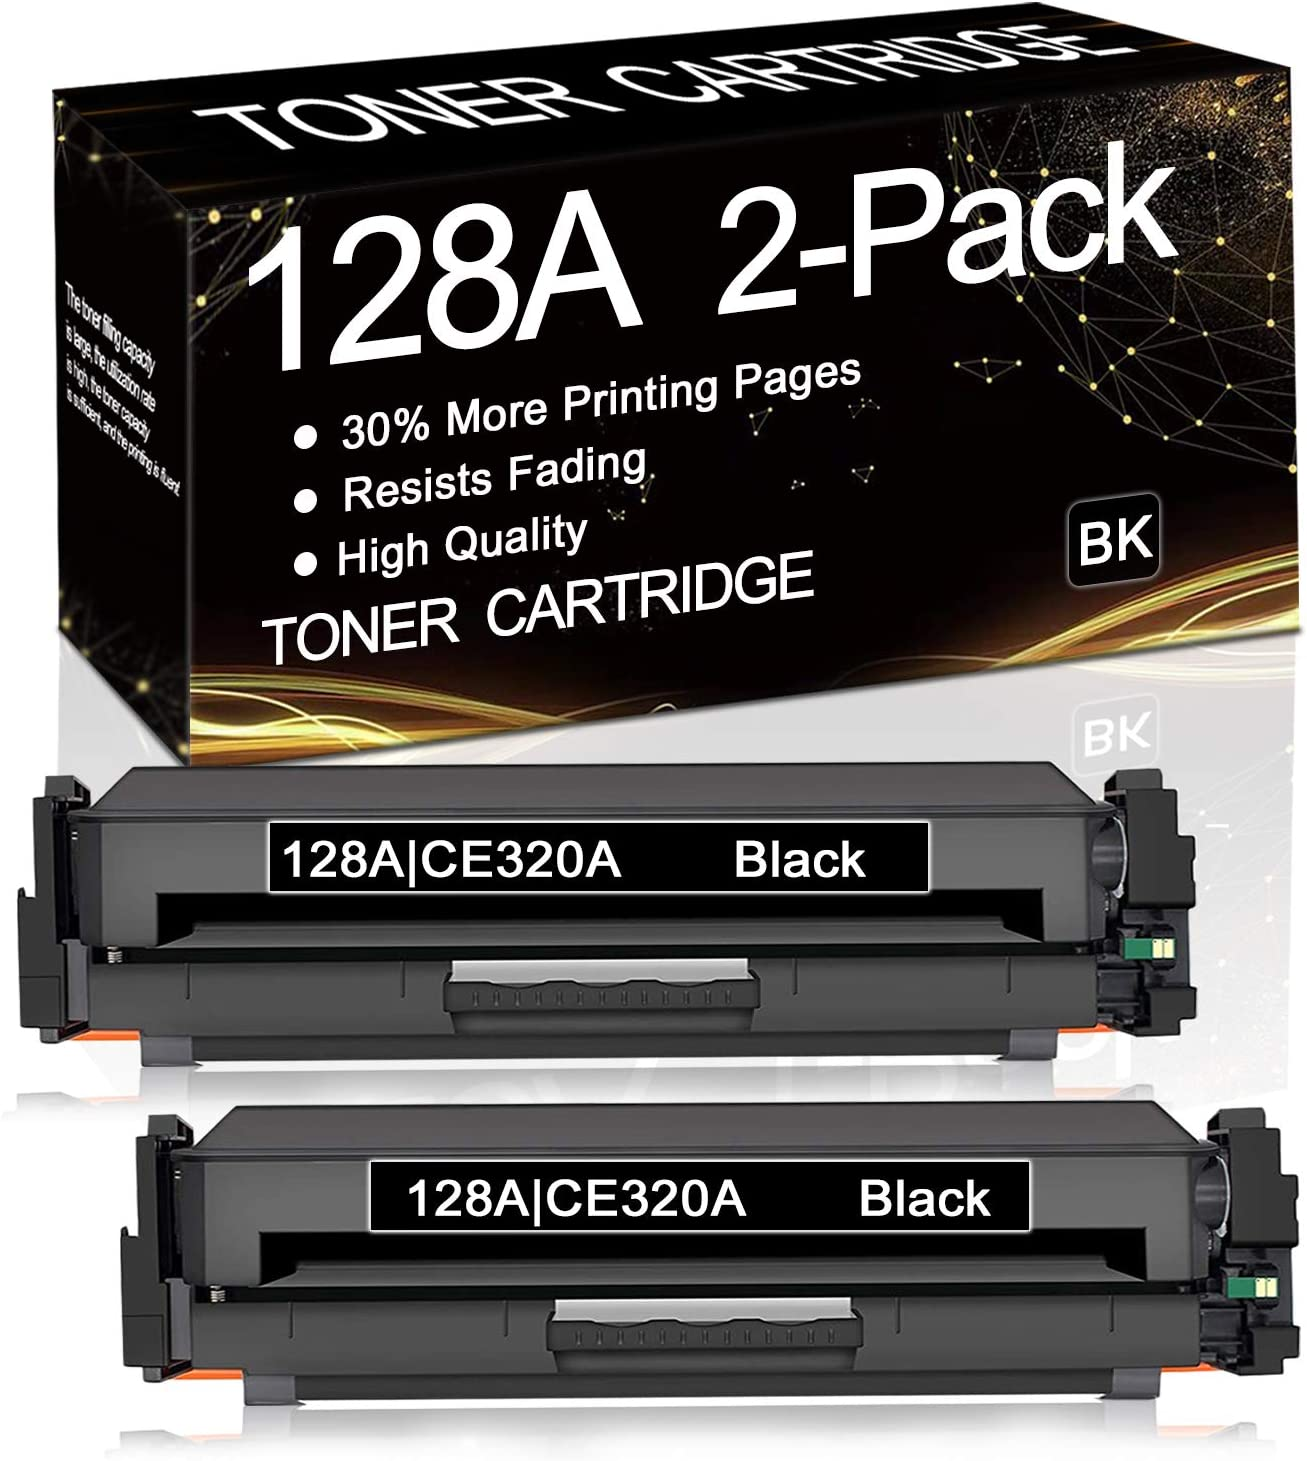 2-Pack Black 128A CE320A Oakland Mall Compatible Remanufactured Mail order cheap Toner Car